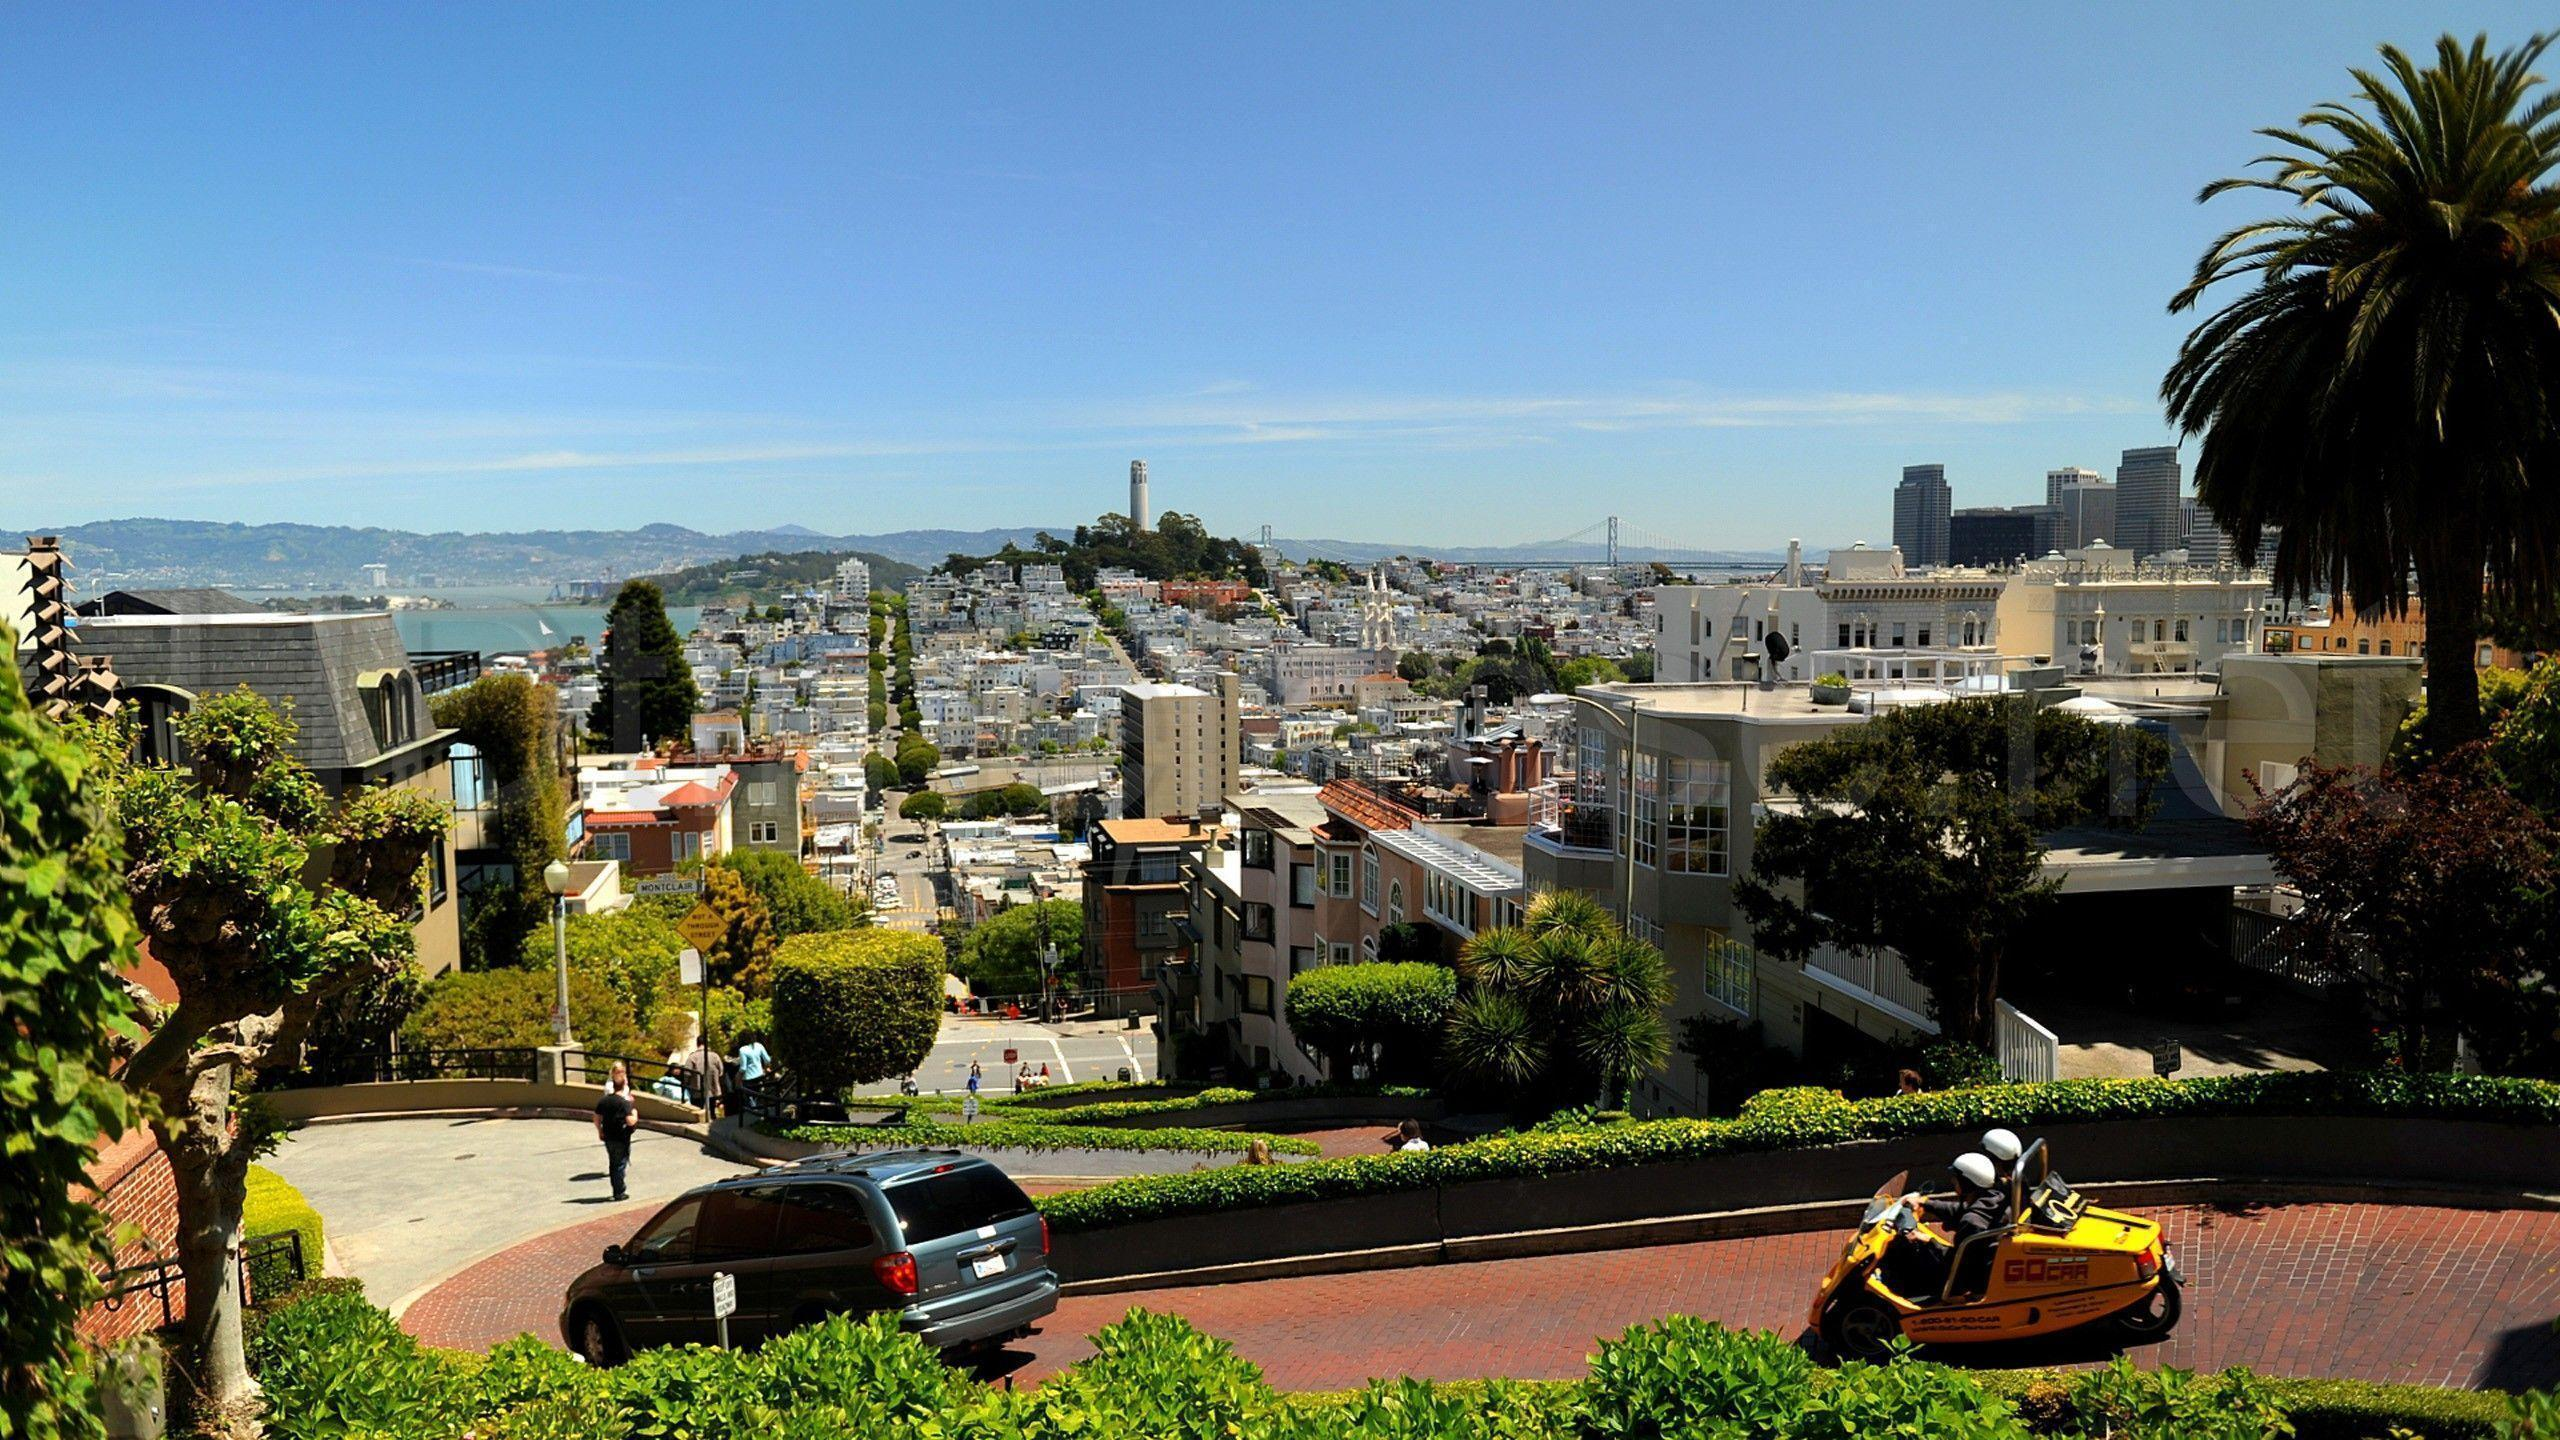 The Image of Streets Architecture San Francisco 2560x1440 HD